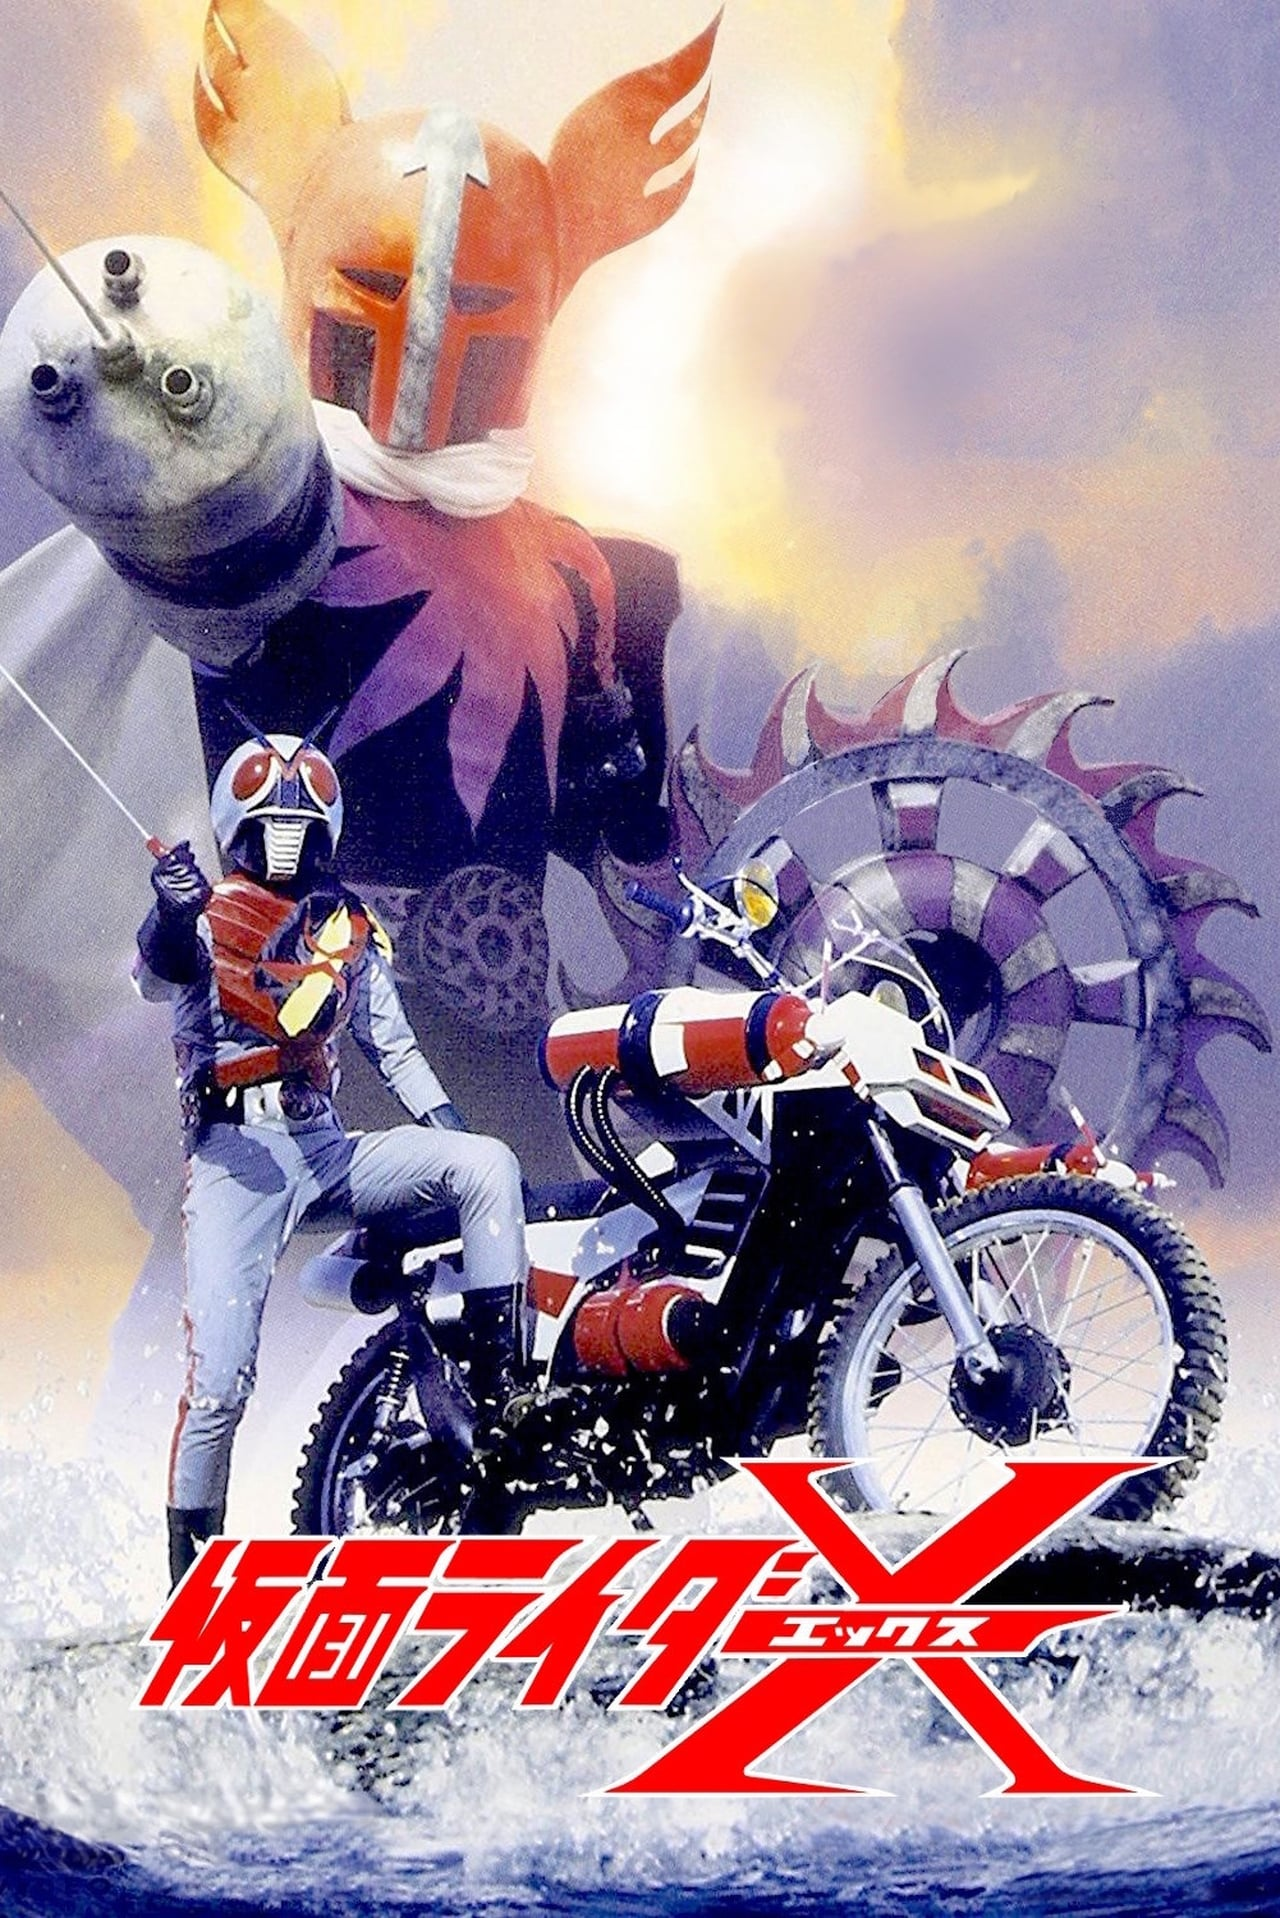 Watch Kamen Rider Season 3 Online